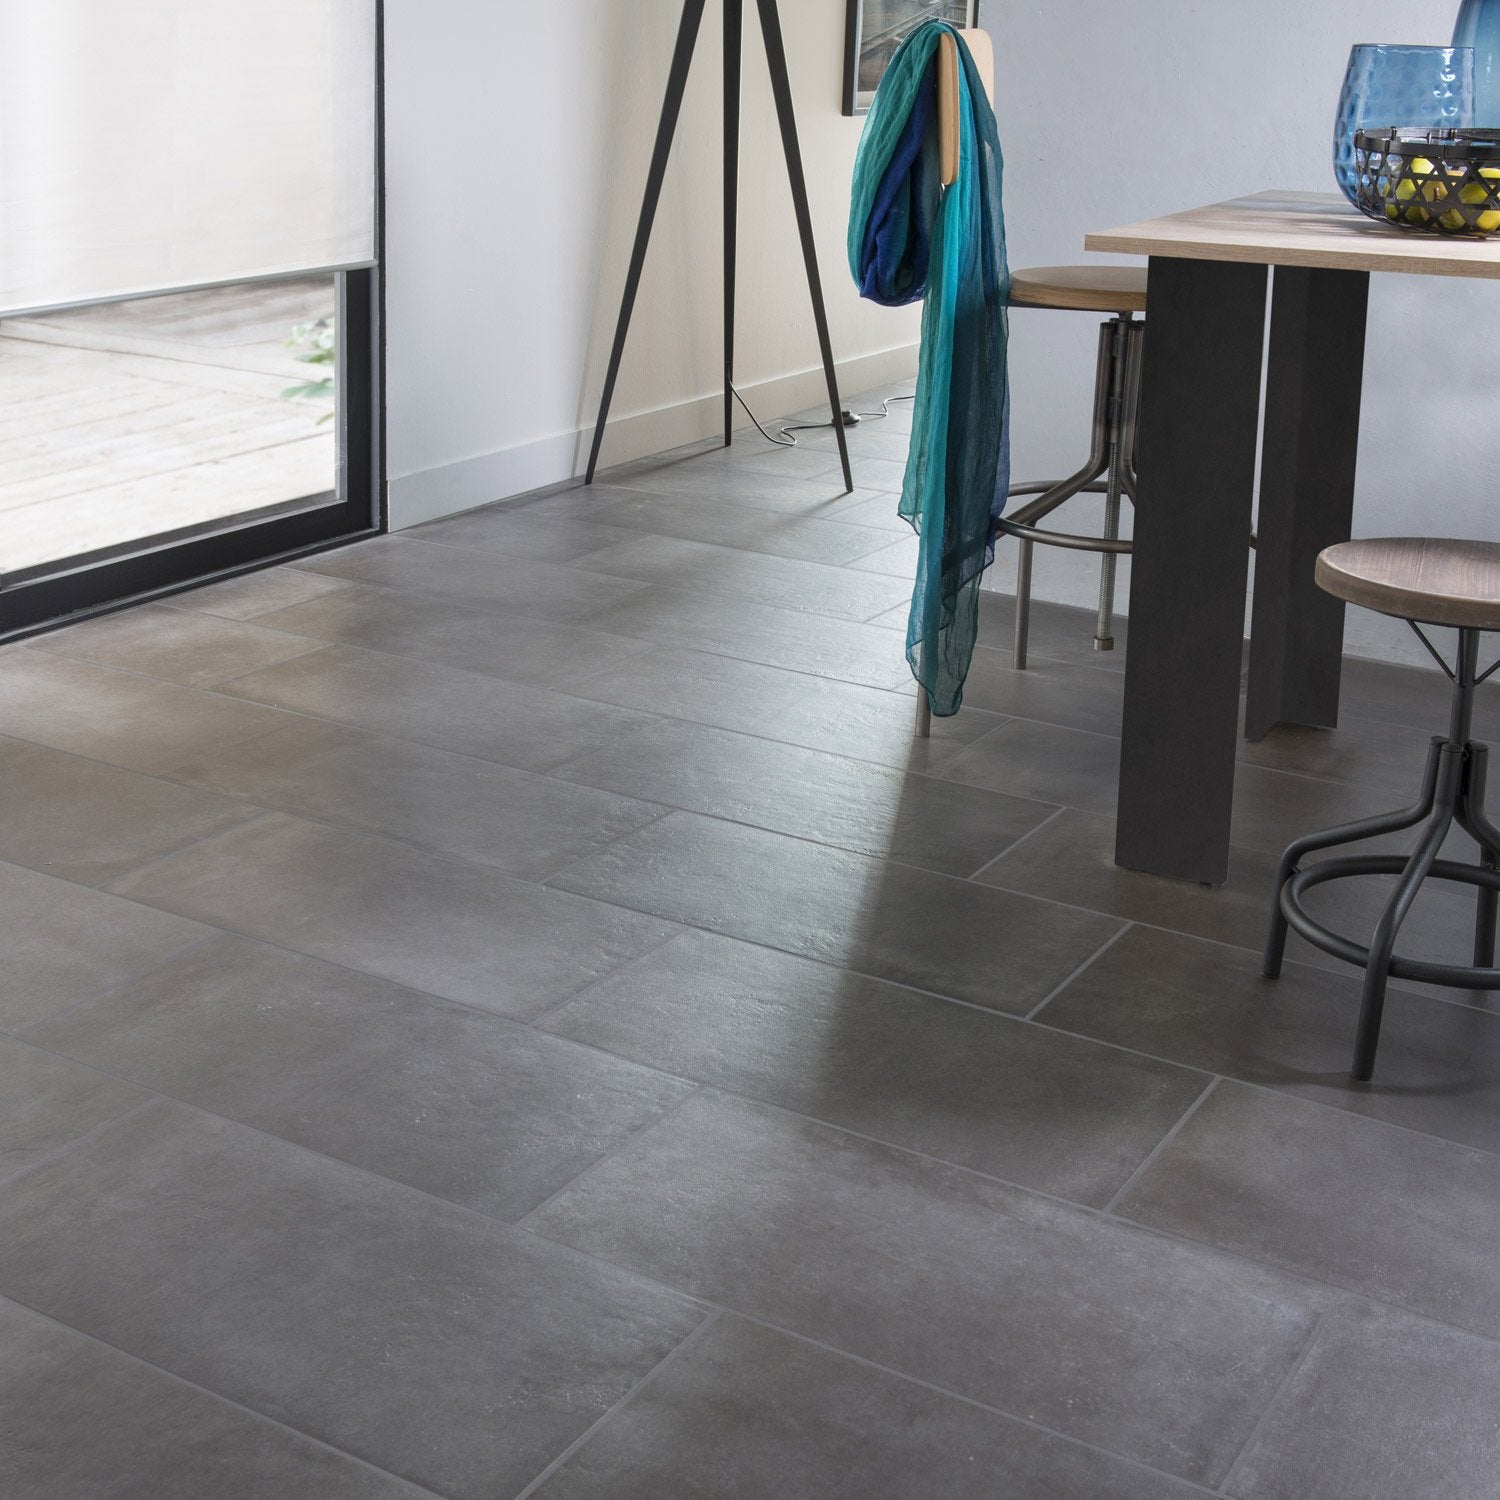 Carrelage sol et mur anthracite effet b ton time x l for Carrelage grand carreaux gris